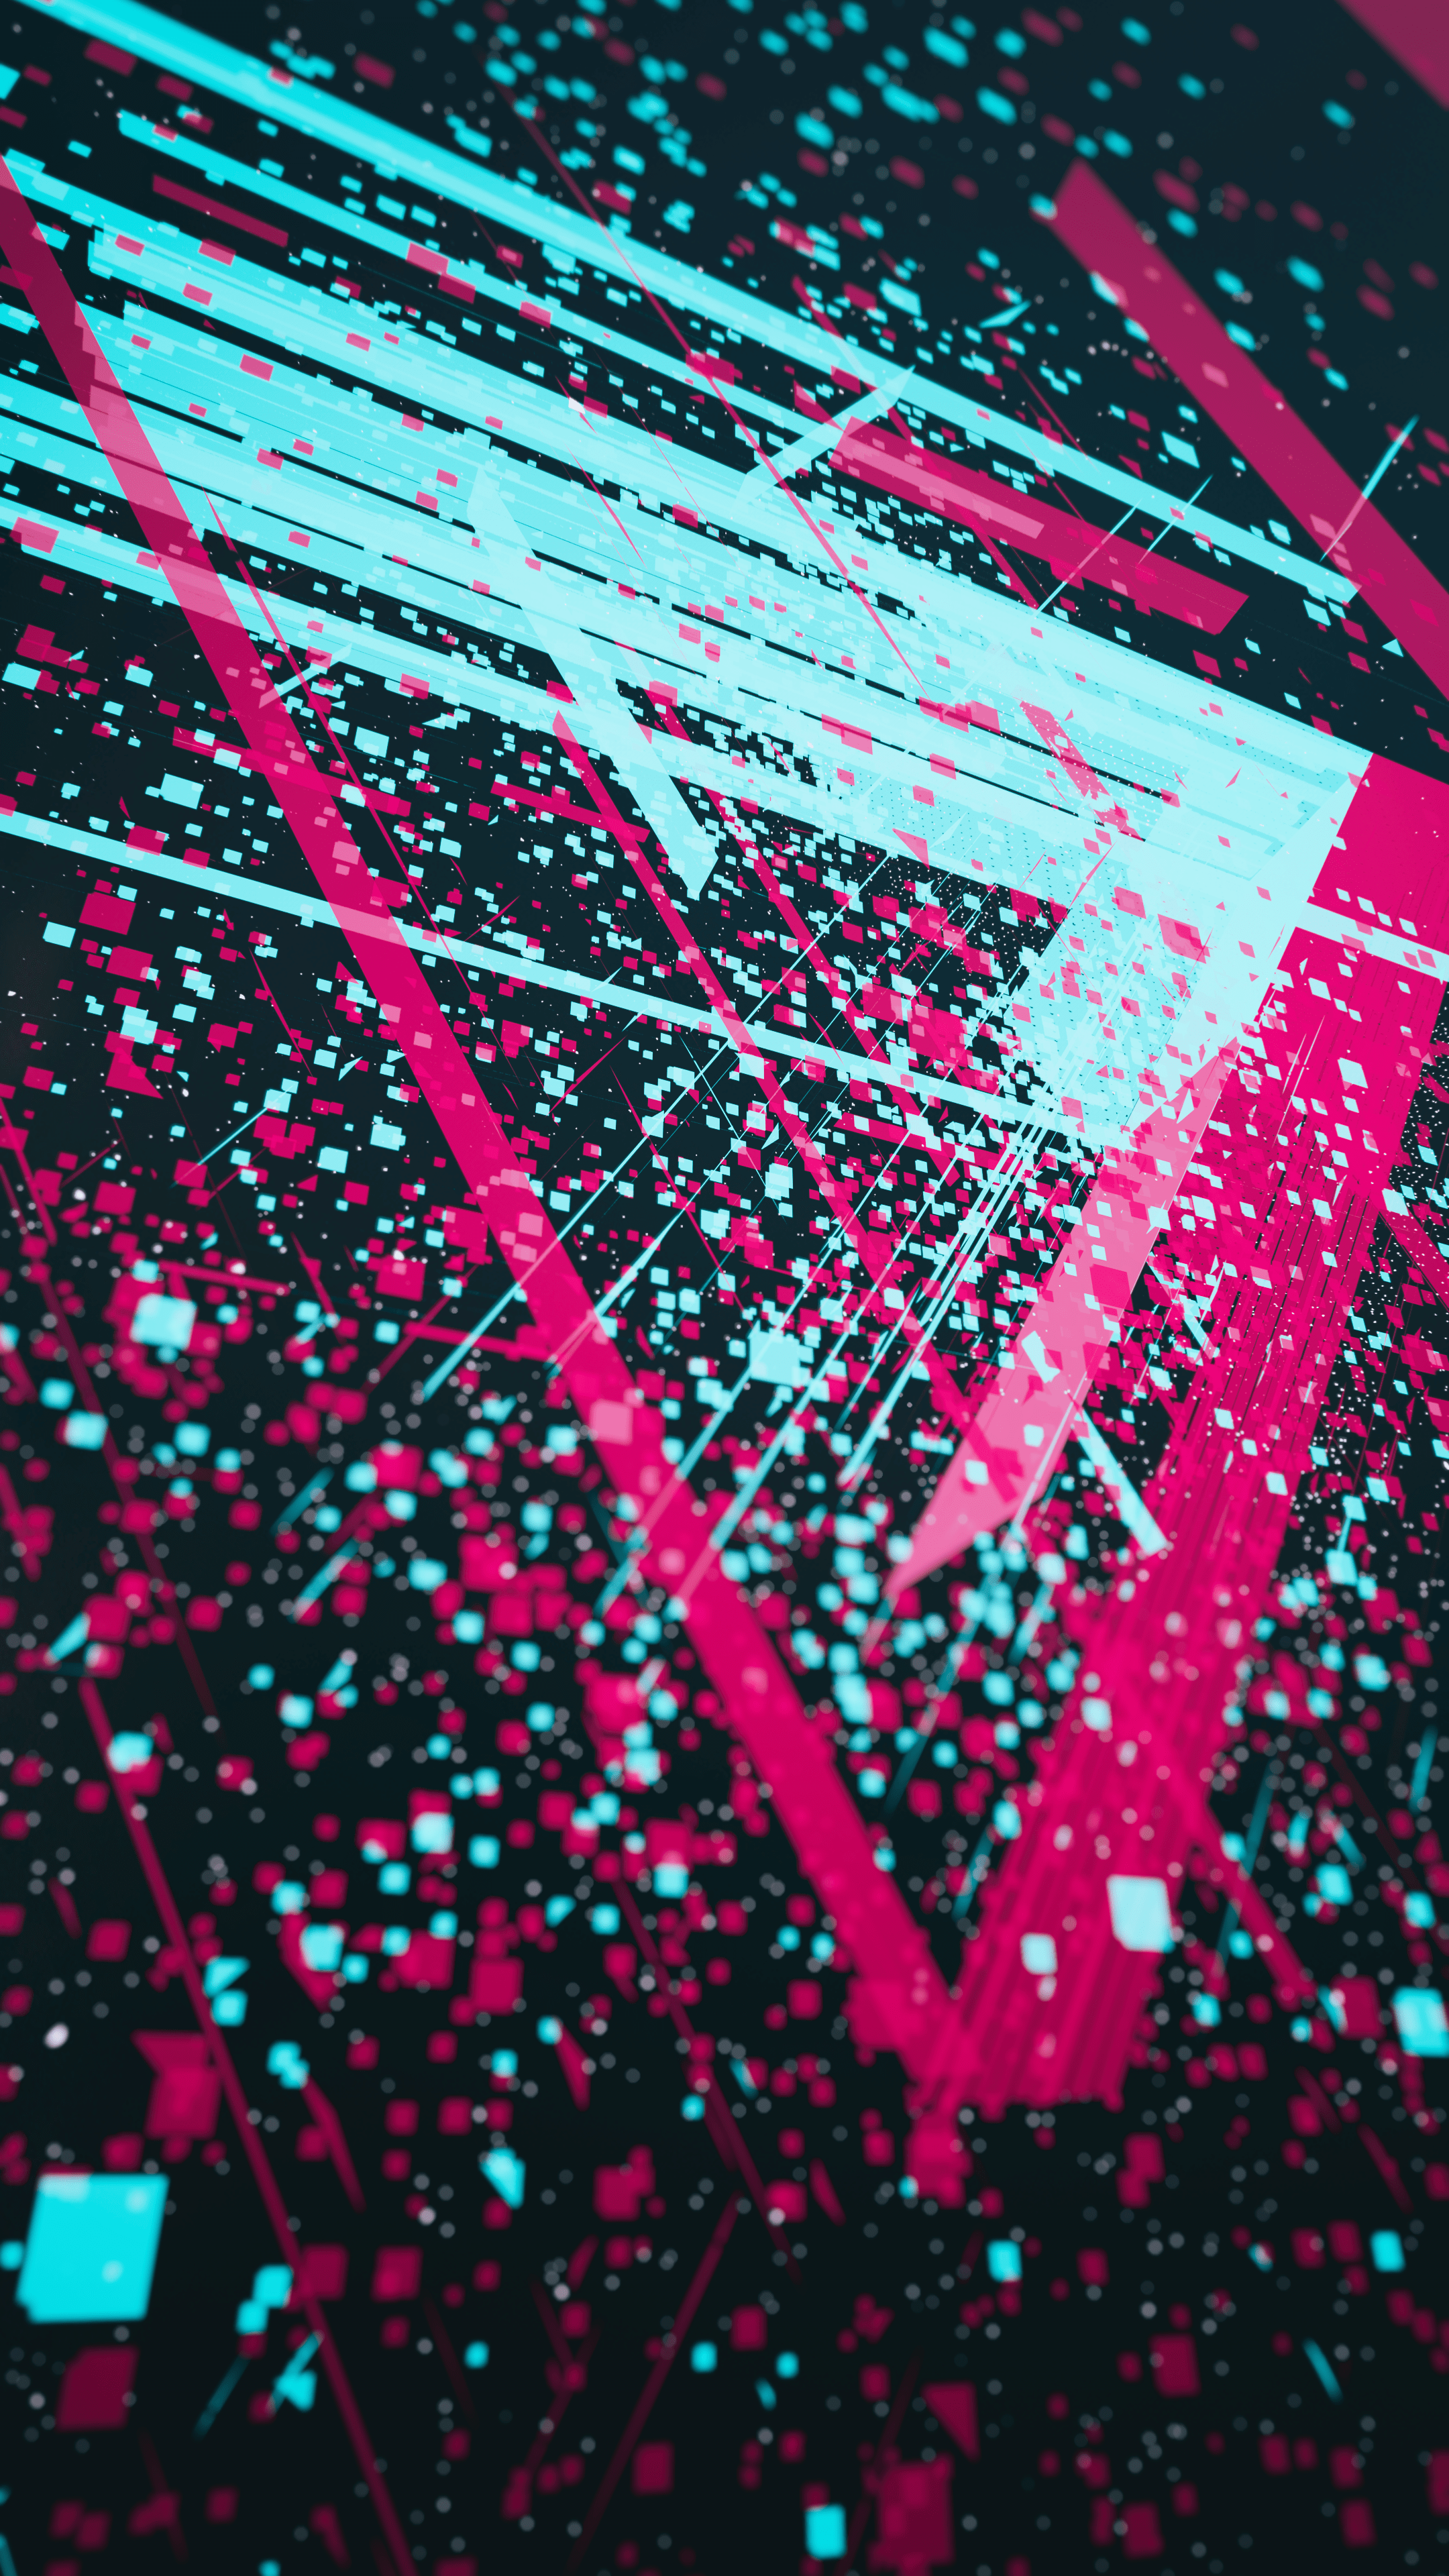 wallpapers from the verge